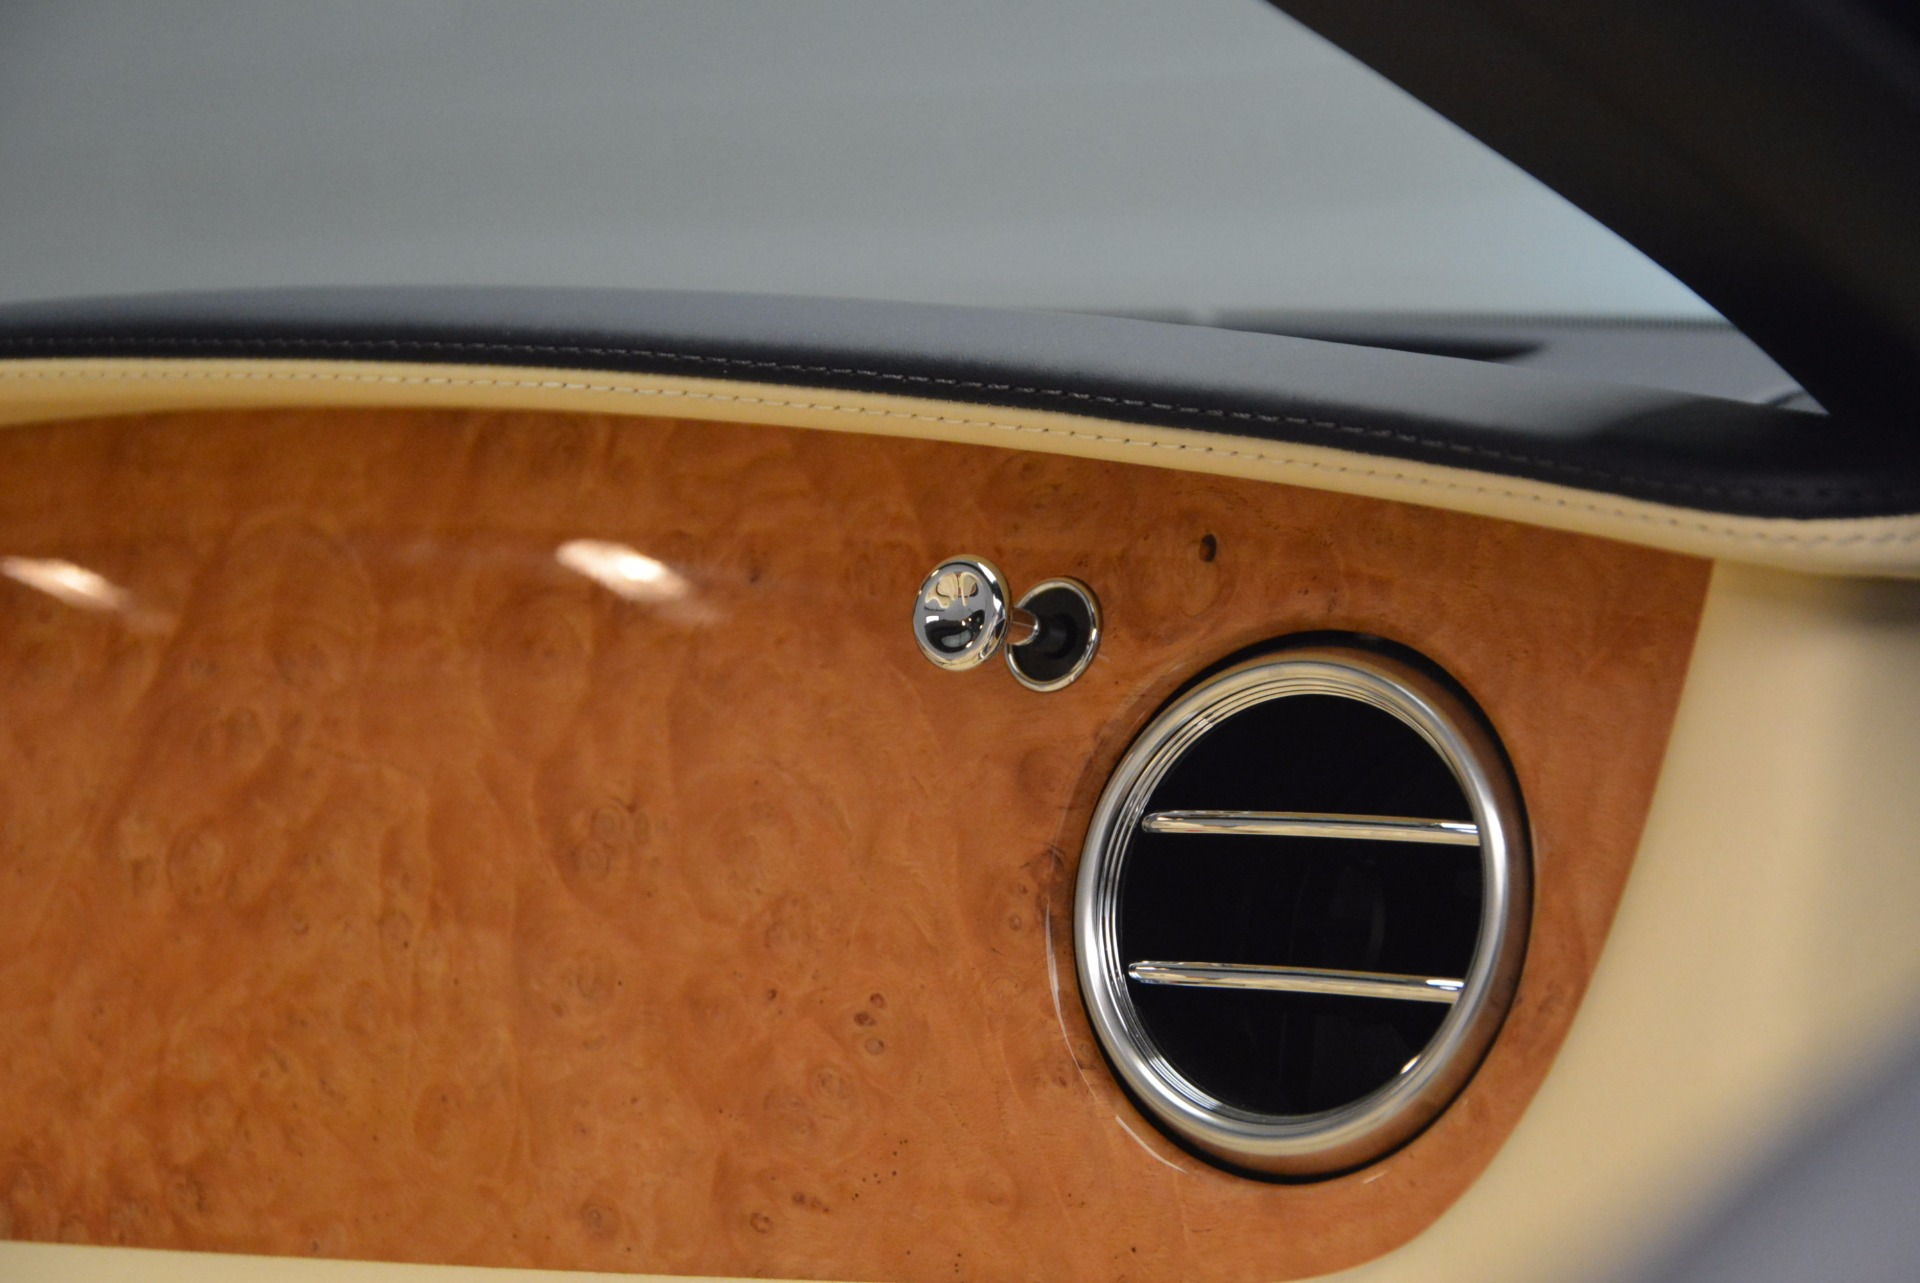 Used 2012 Bentley Continental GTC W12 For Sale In Westport, CT 1475_p54